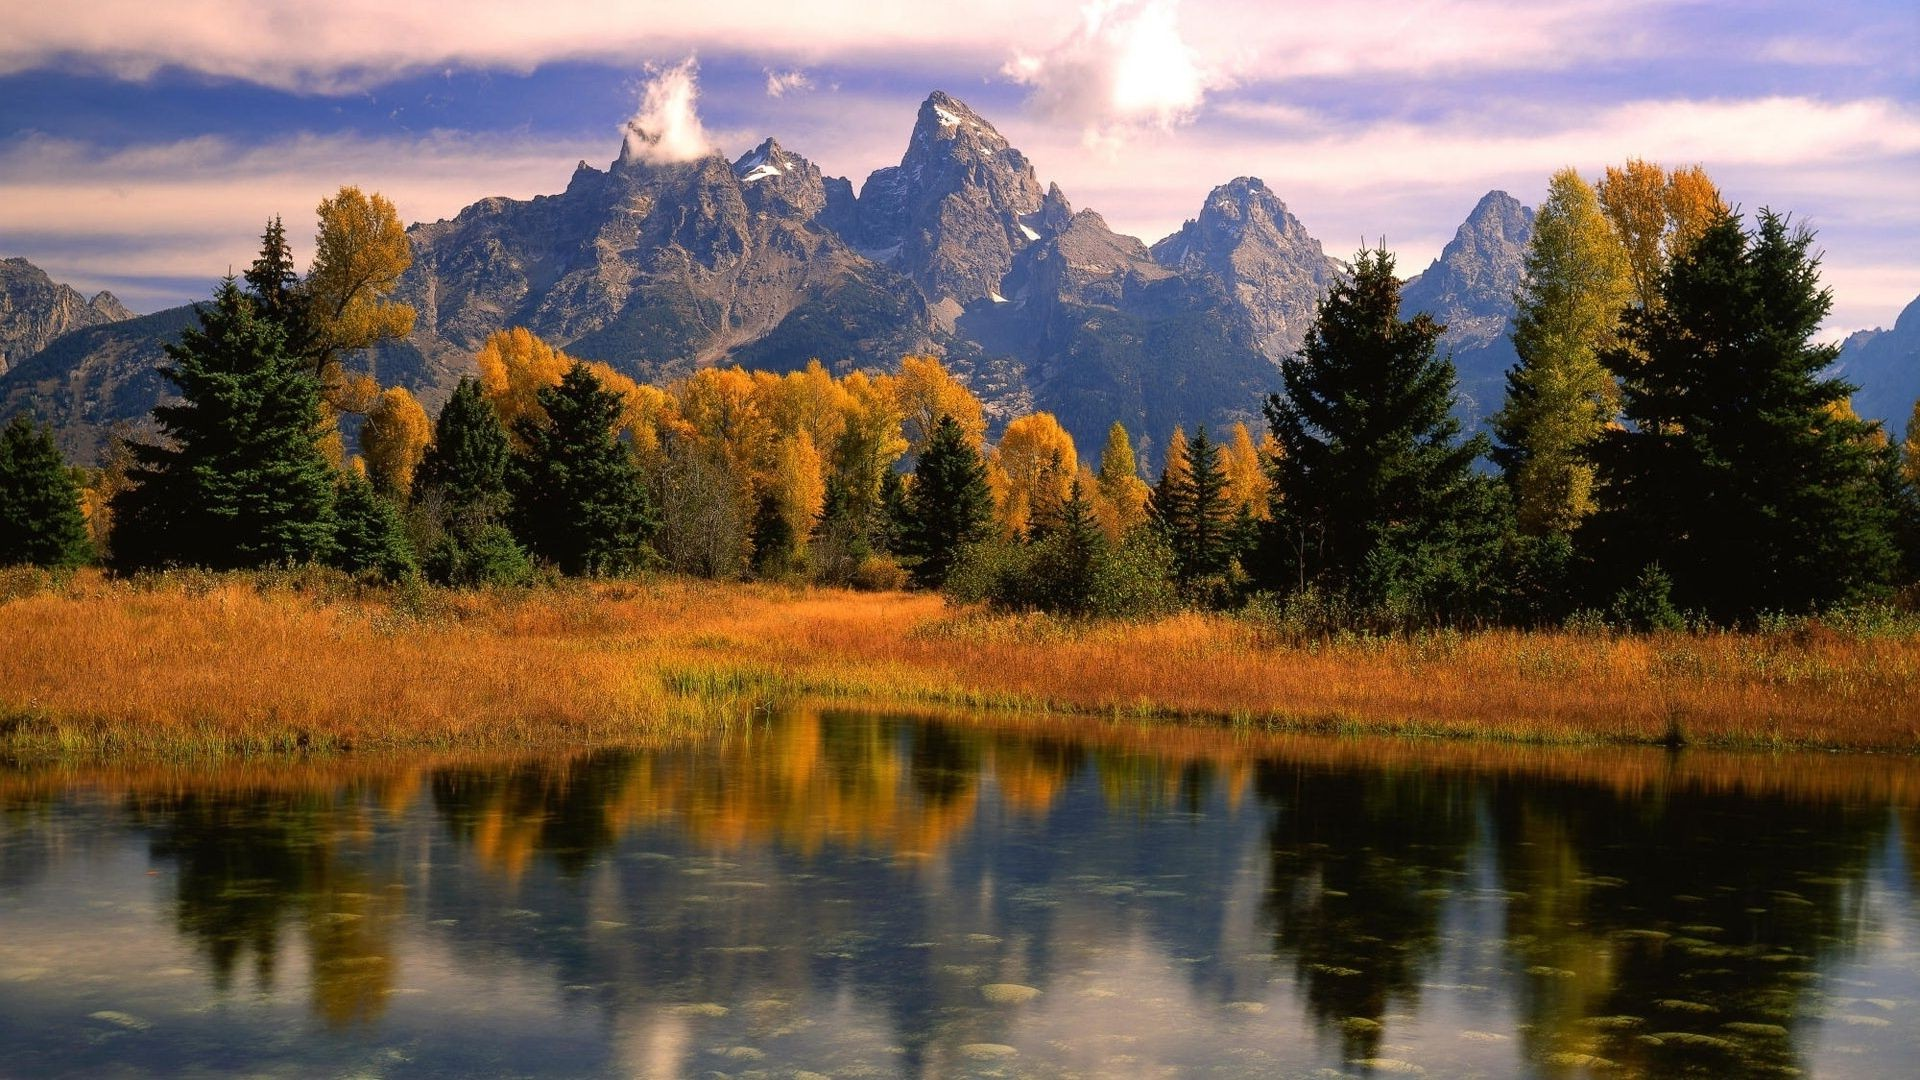 mirror lake on the background of autumn forest and mountains